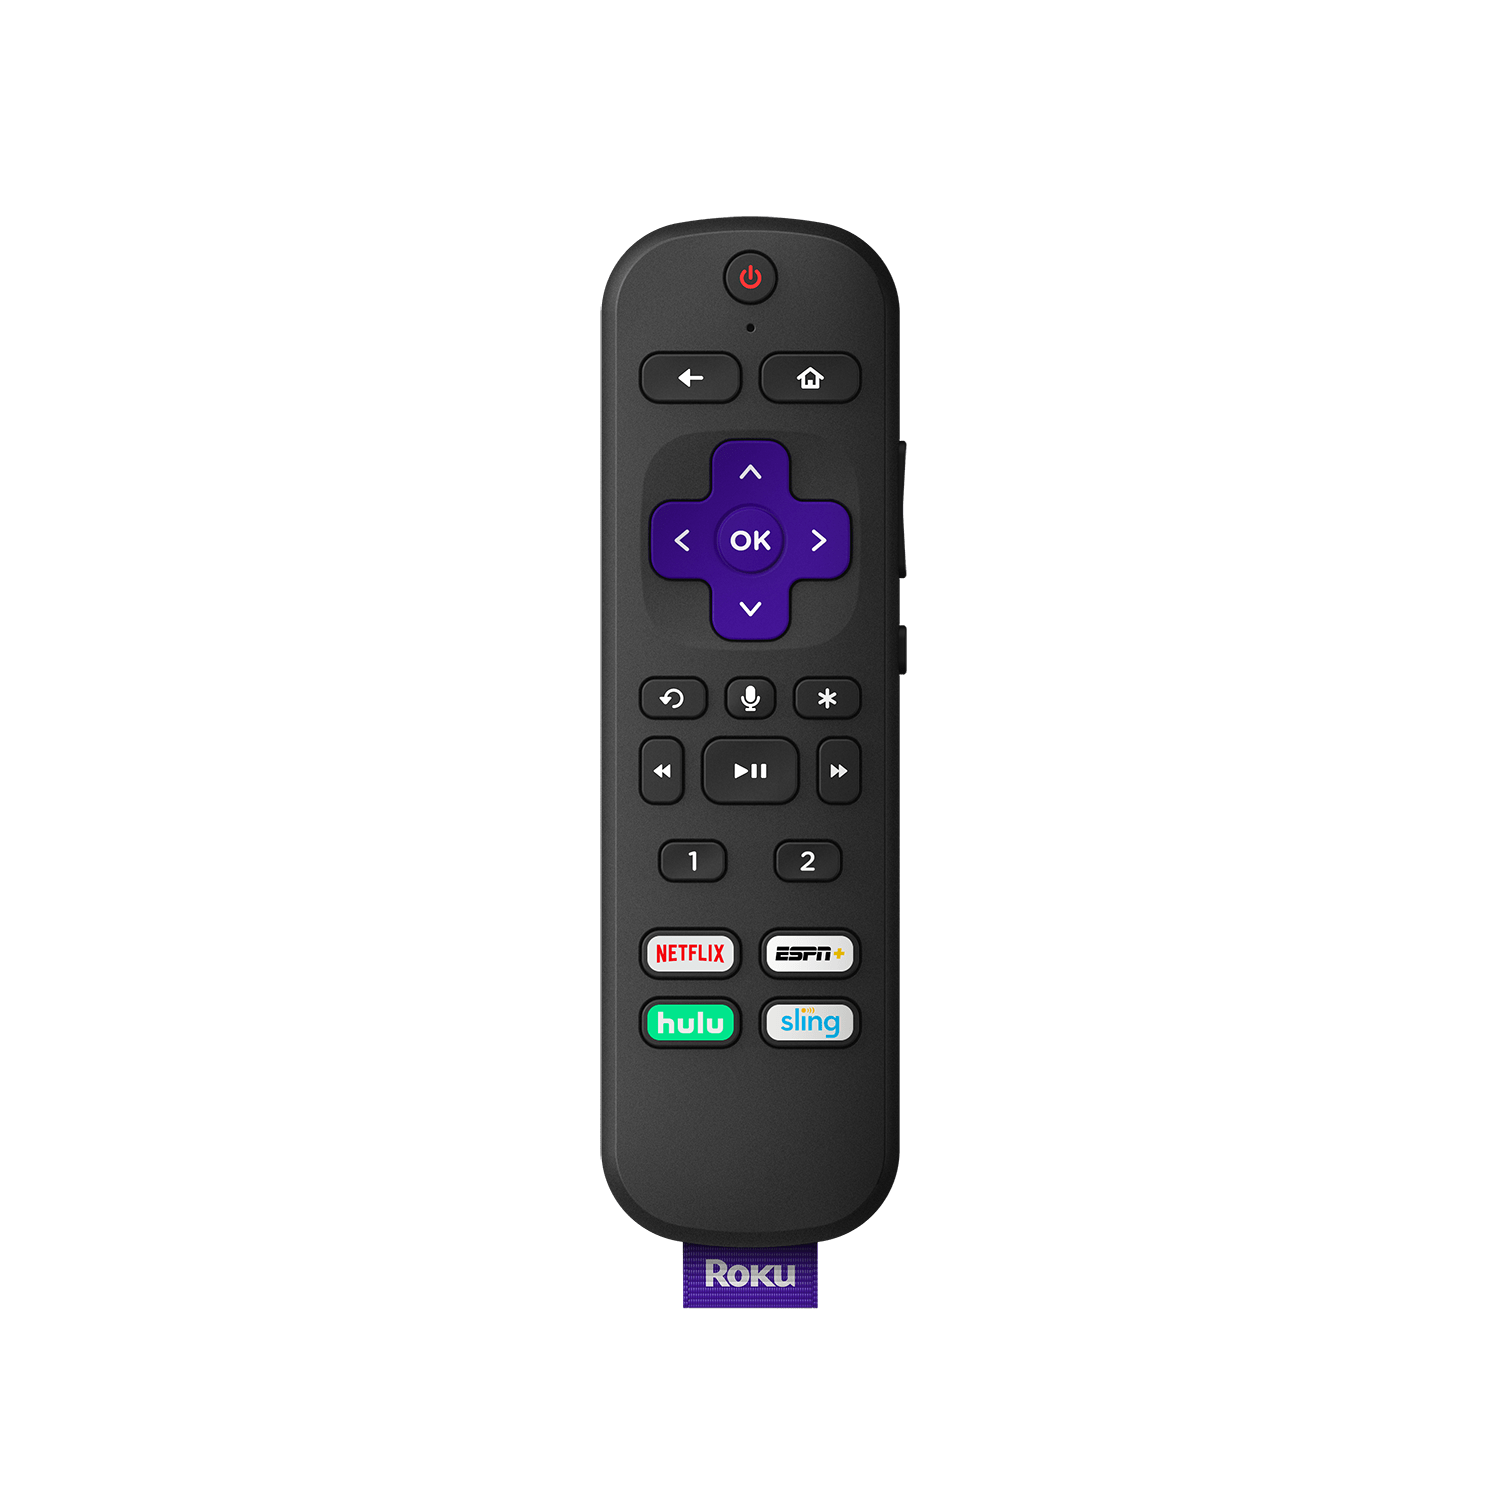 Roku's latest Ultra player is faster and has better shortcuts